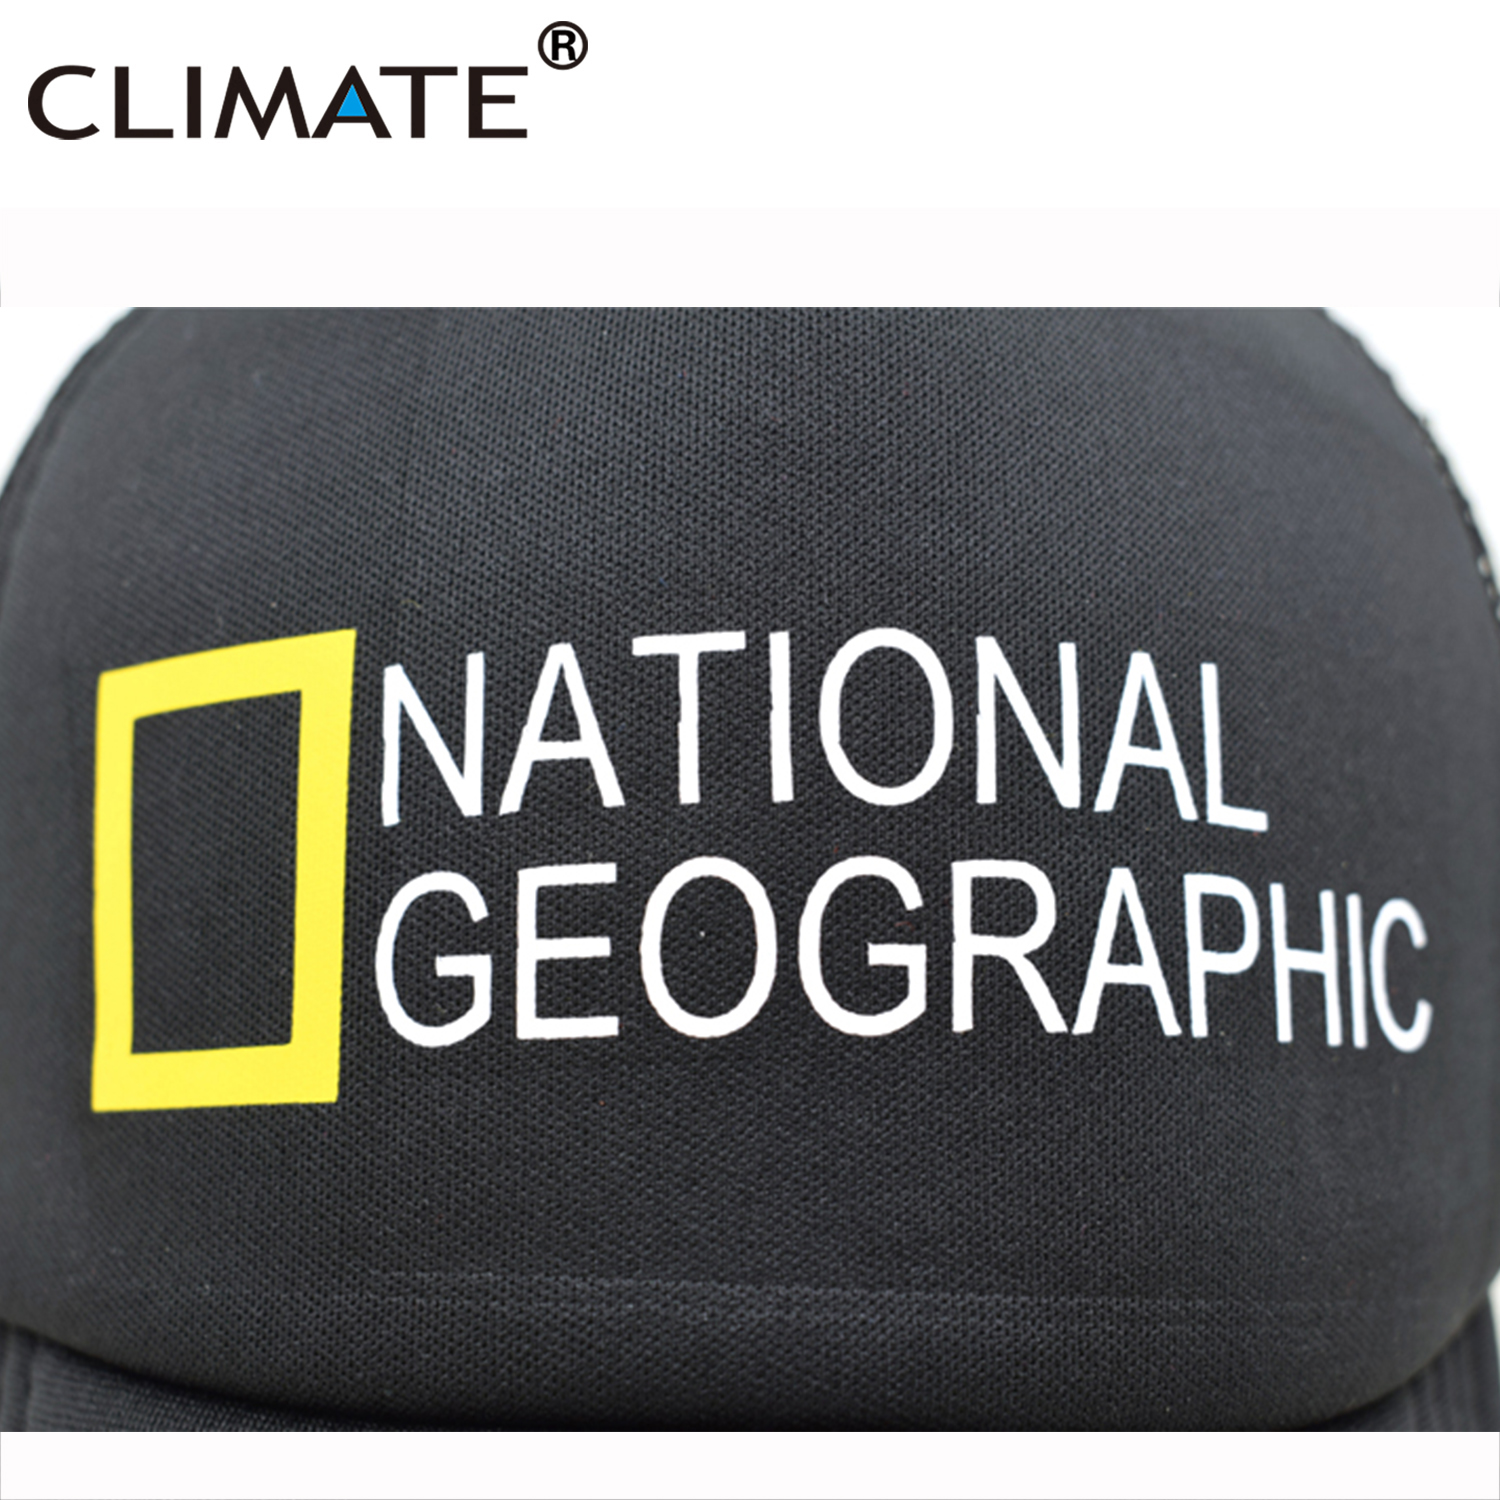 KLIMAAT Heren New Trucker Caps National Geographic Channel Hot Summer - Kledingaccessoires - Foto 2